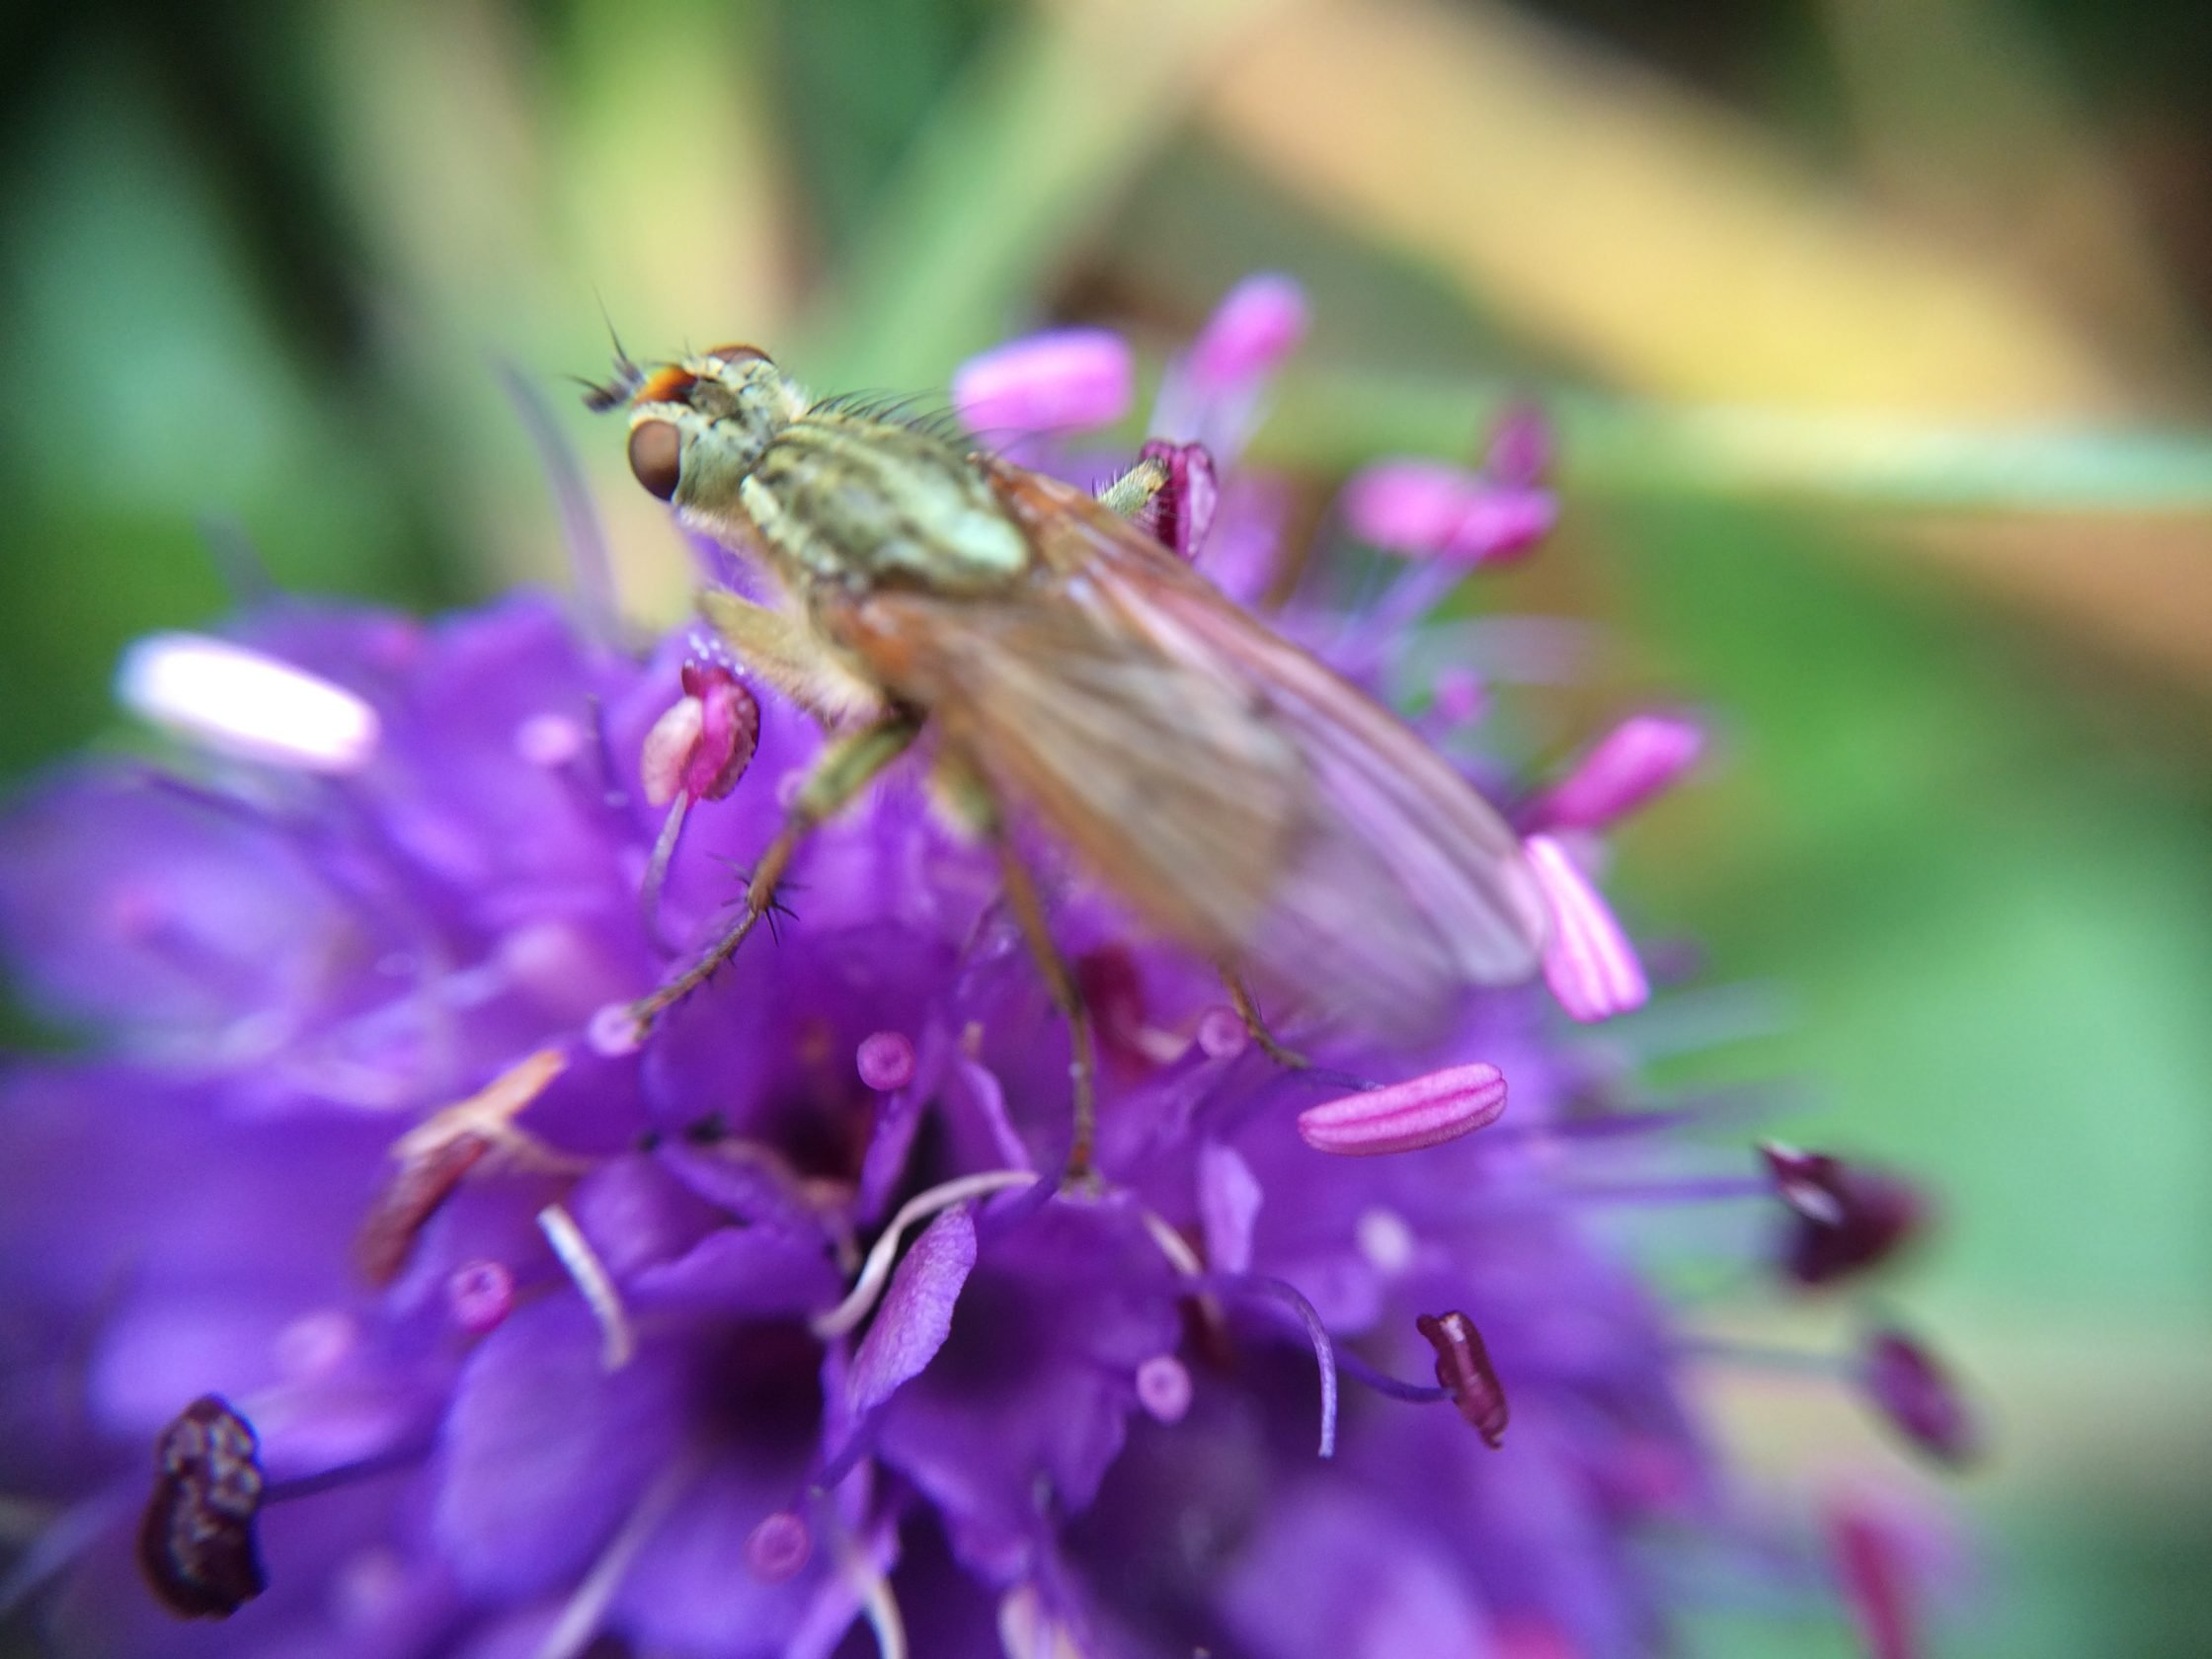 Photograph of closely bunched spherical purple flowers with an iridescent green insect resting on it.